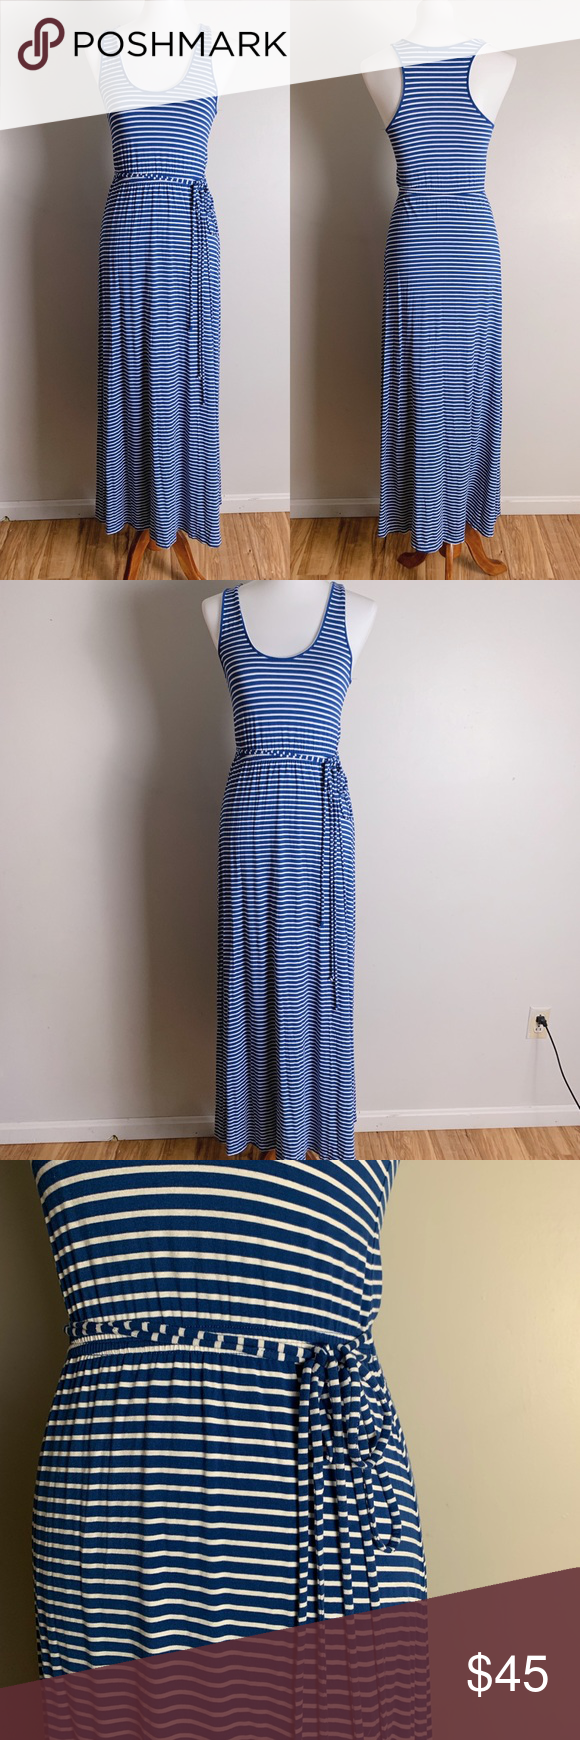 4eee35750e9 J. CREW Striped Maxi Dress with Tie-Waist Vibe  the perfect throw on ...